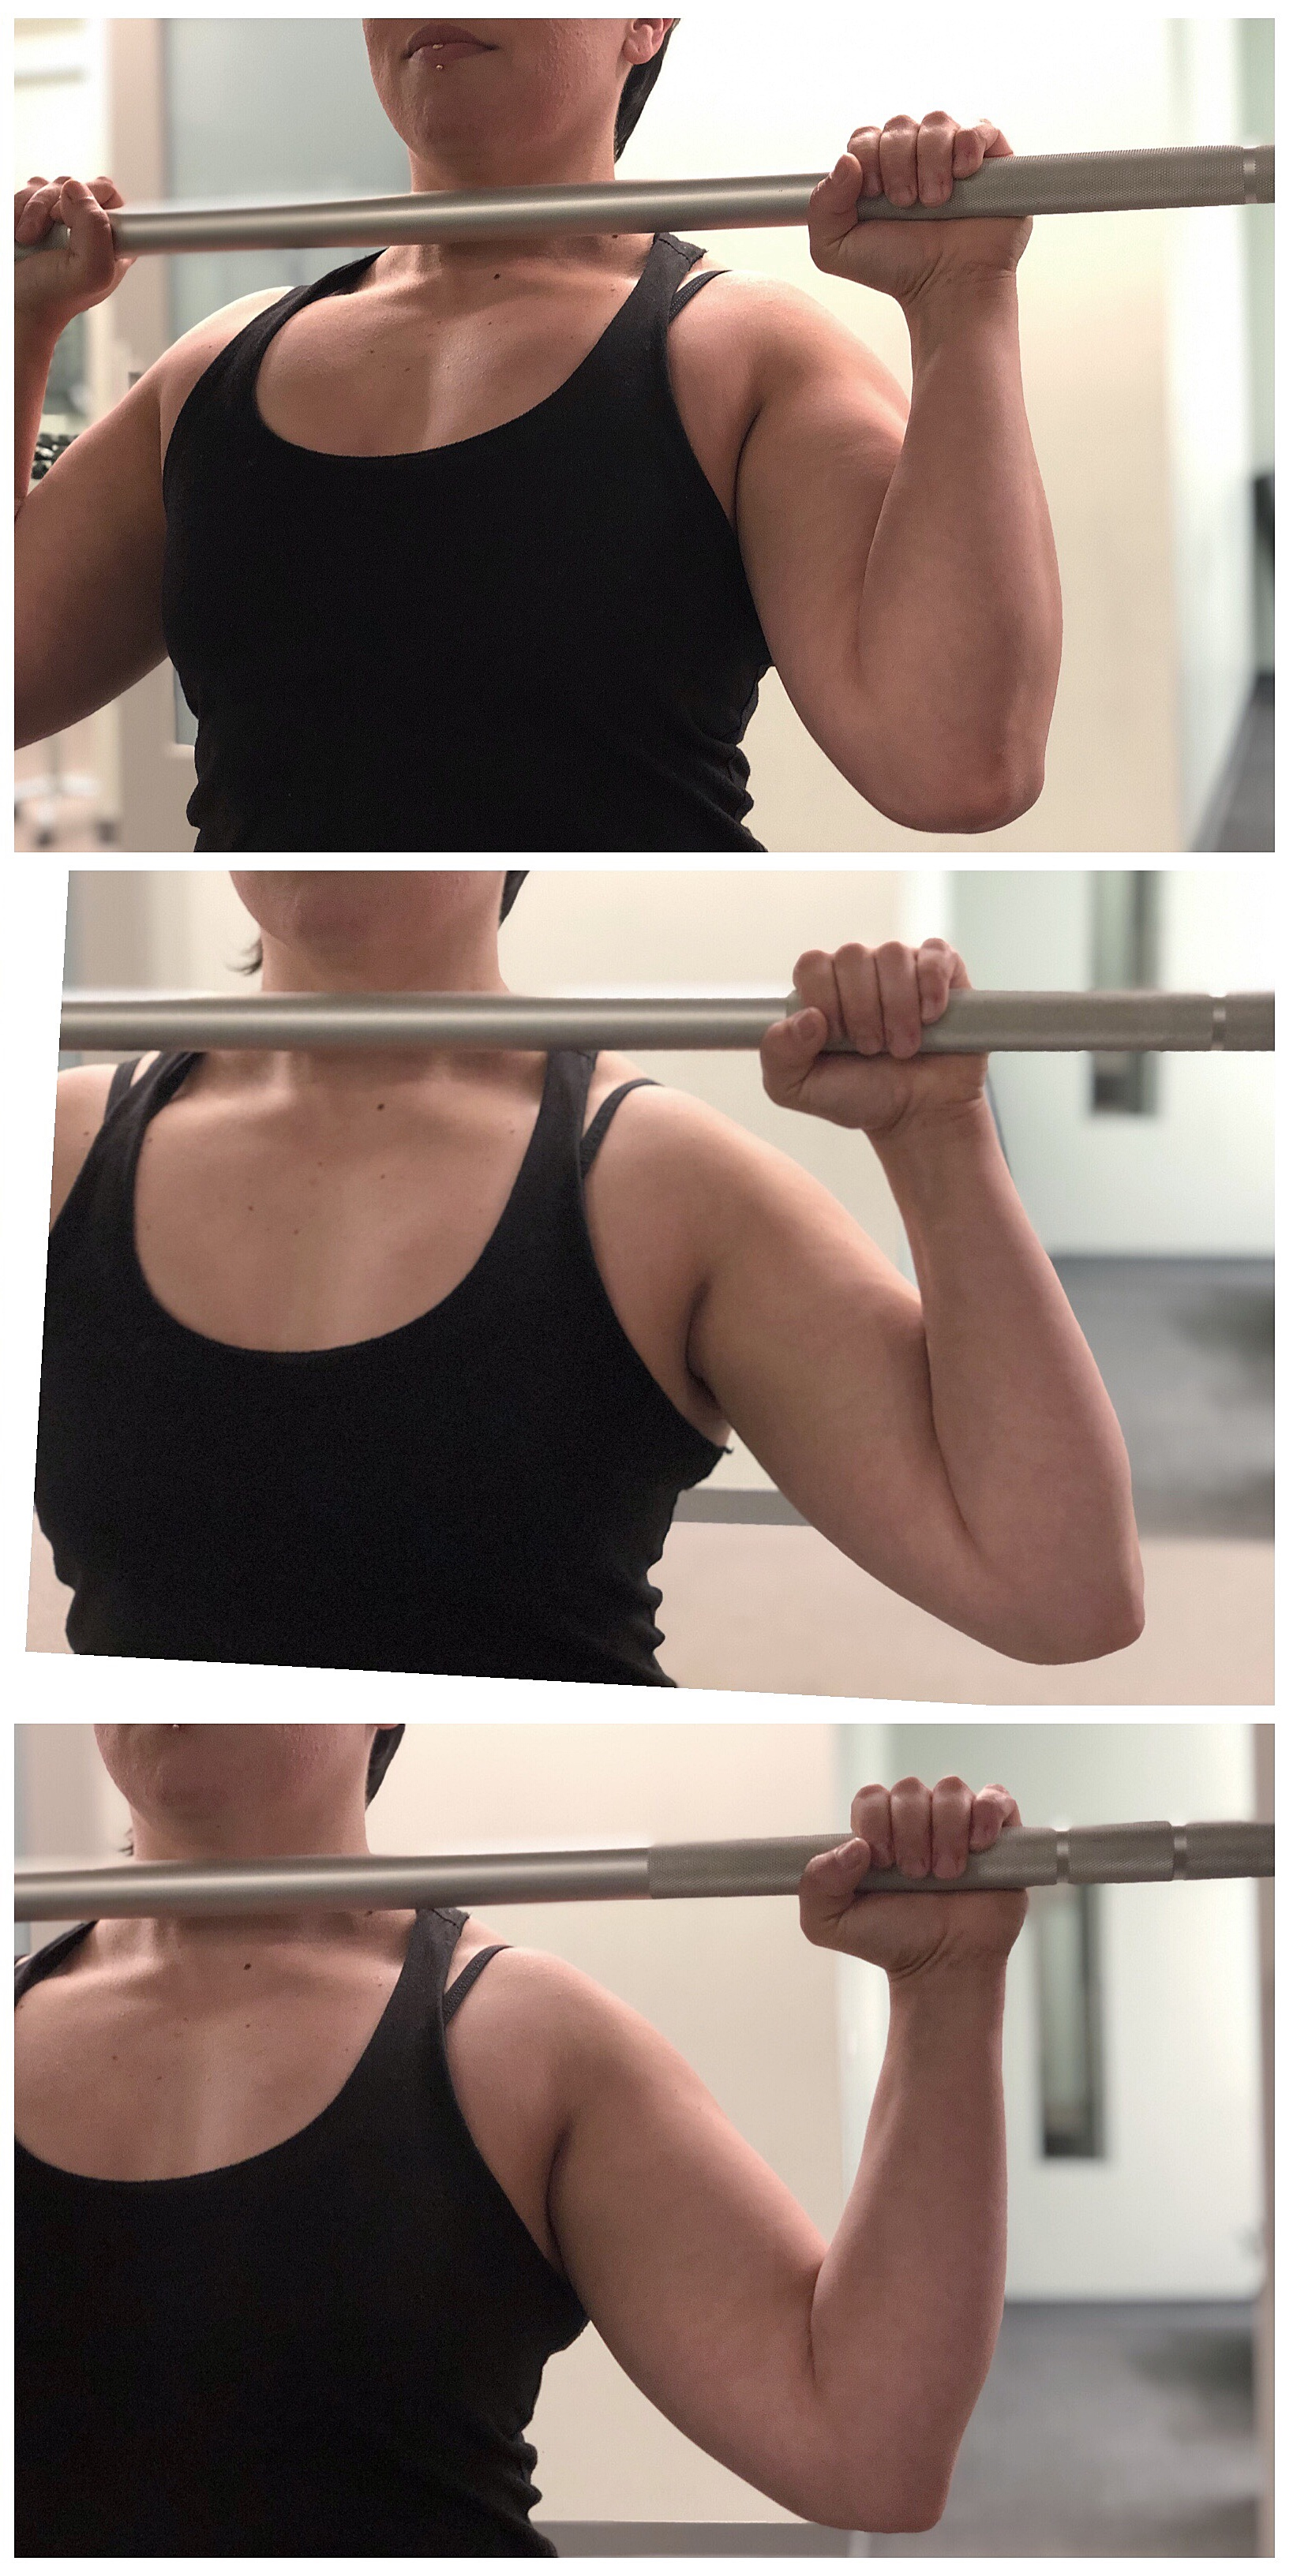 Top: This is the CORRECT POSITION, Middle: INCORRECT- elbow flared out too much, Bottom: INCORRECT- grip too wide.